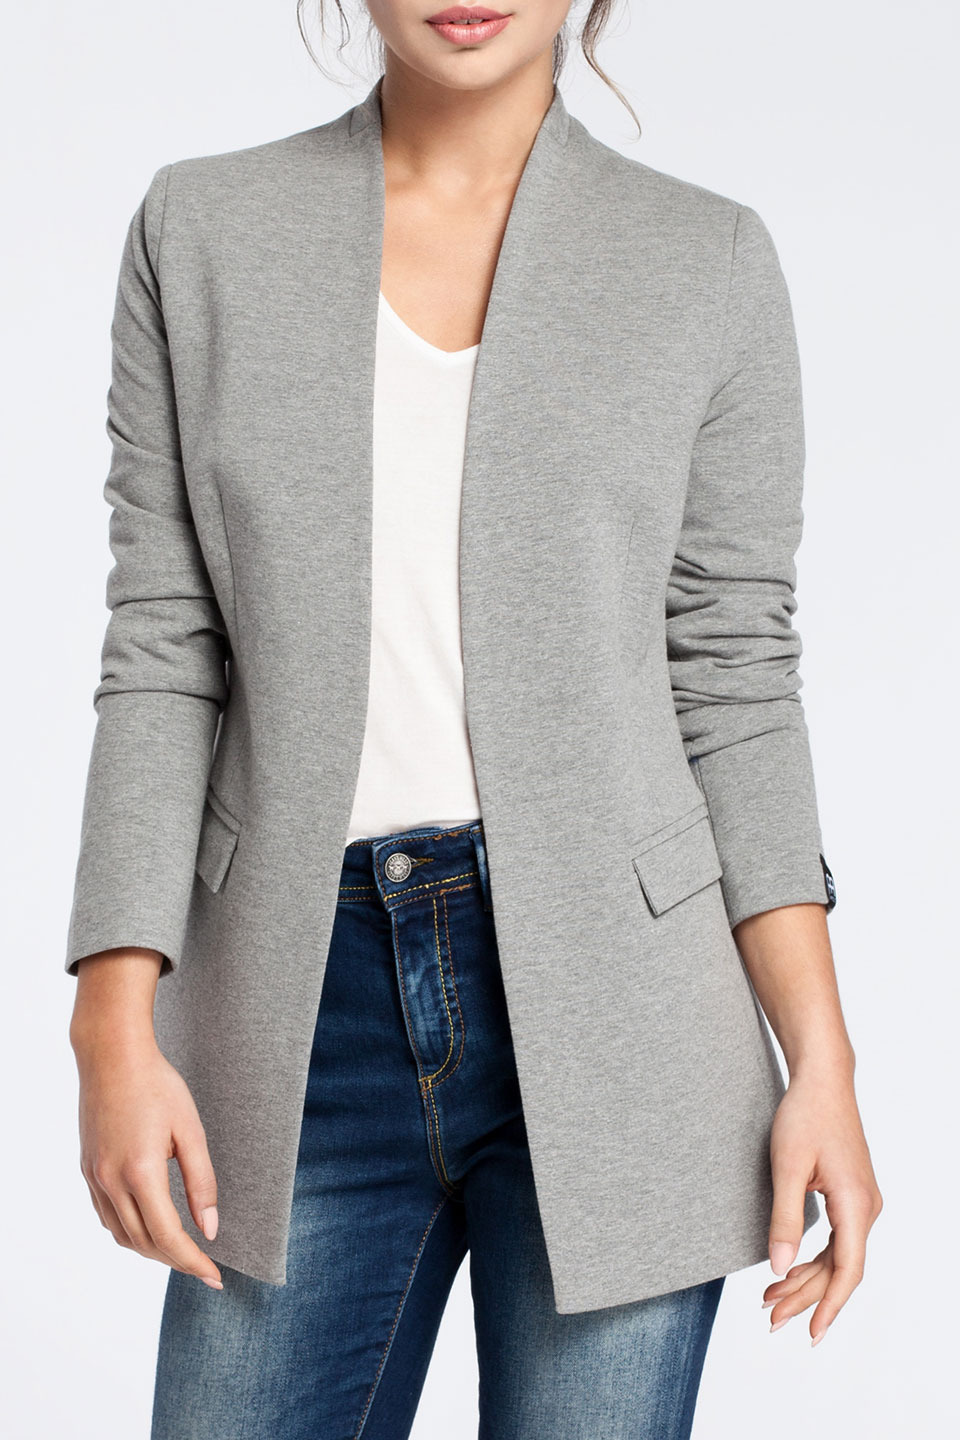 Chardonnay Blazer in Gray